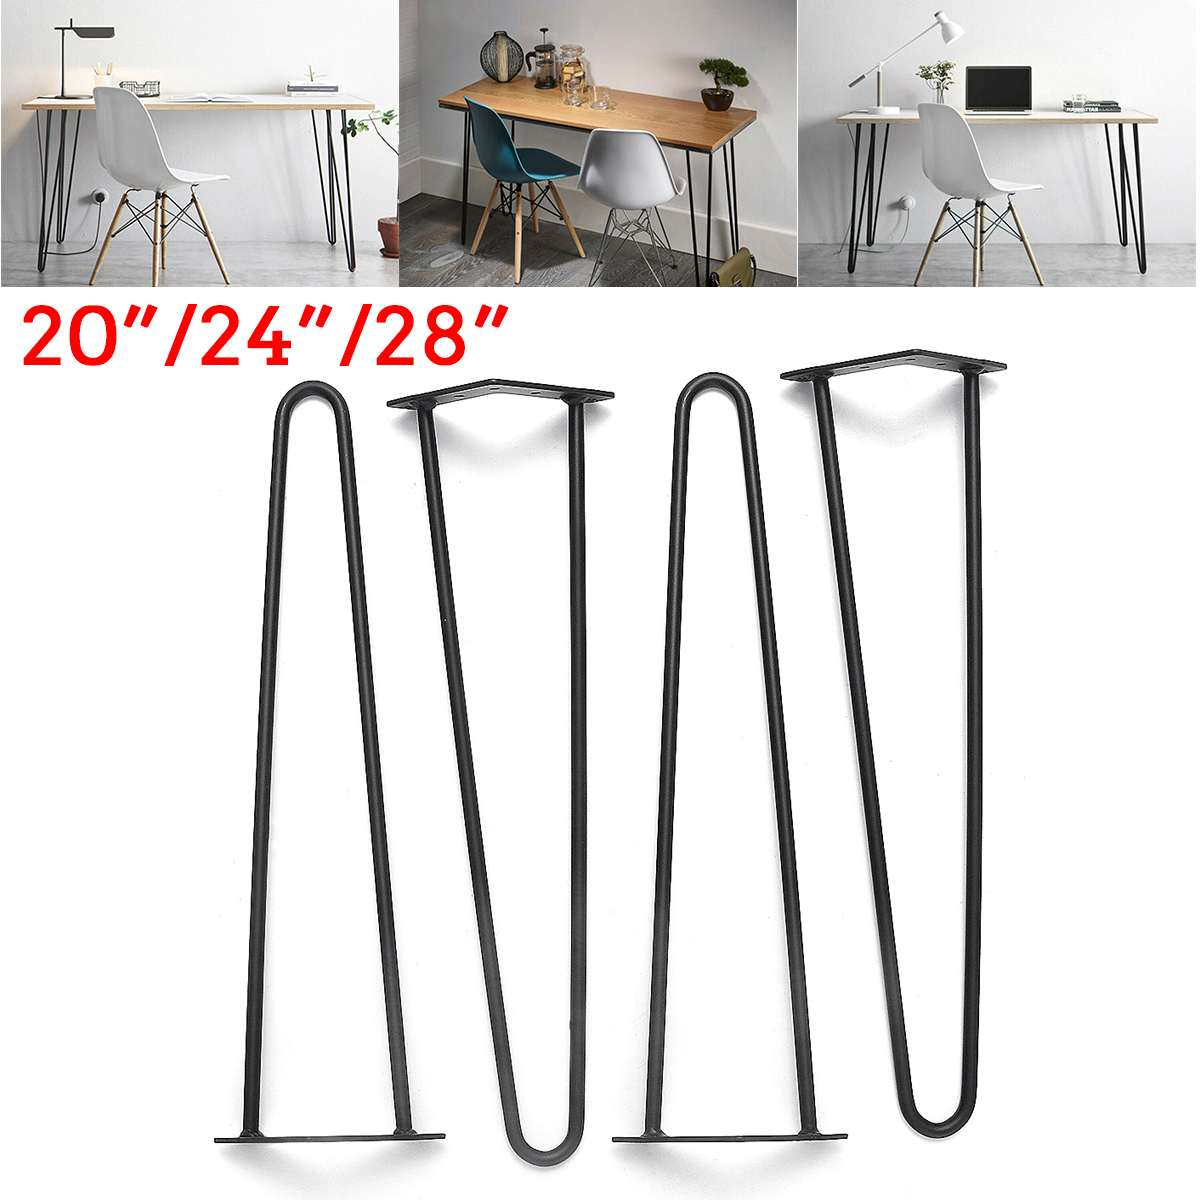 4Pcs/lot 20-28inch Metal Hairpin Table Desk Leg Solid Iron Wire Support Leg For Sofa Cabinet Chairs DIY Handcrafts Furniture Leg